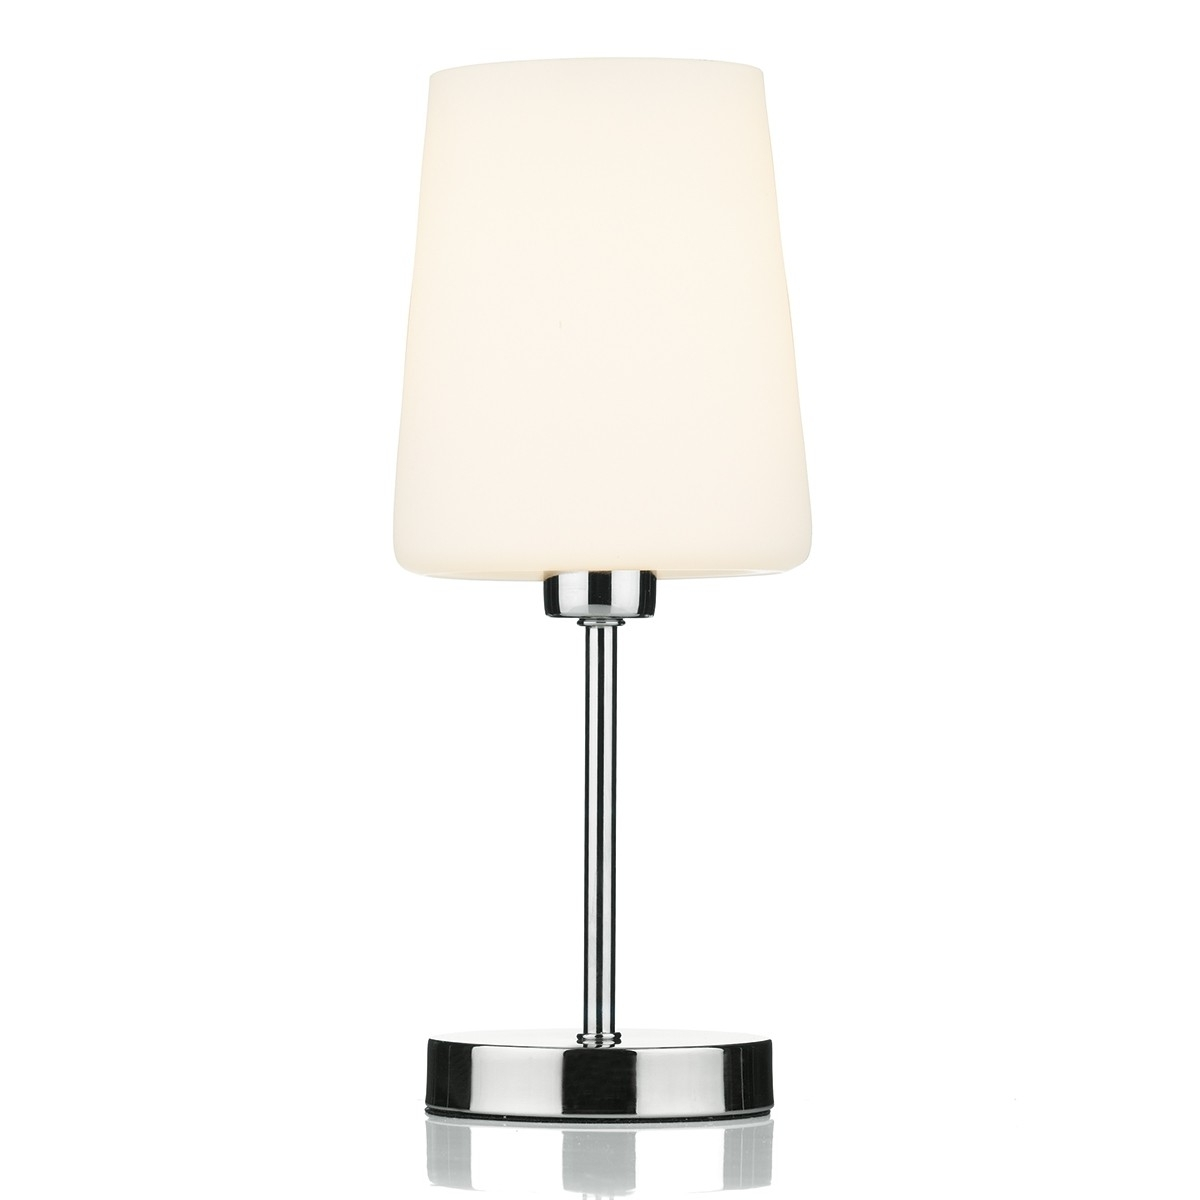 Lamp : Touch Table Lamps Bedroom Exciting For Living Room John Lewis Intended For Preferred Living Room Touch Table Lamps (View 4 of 20)